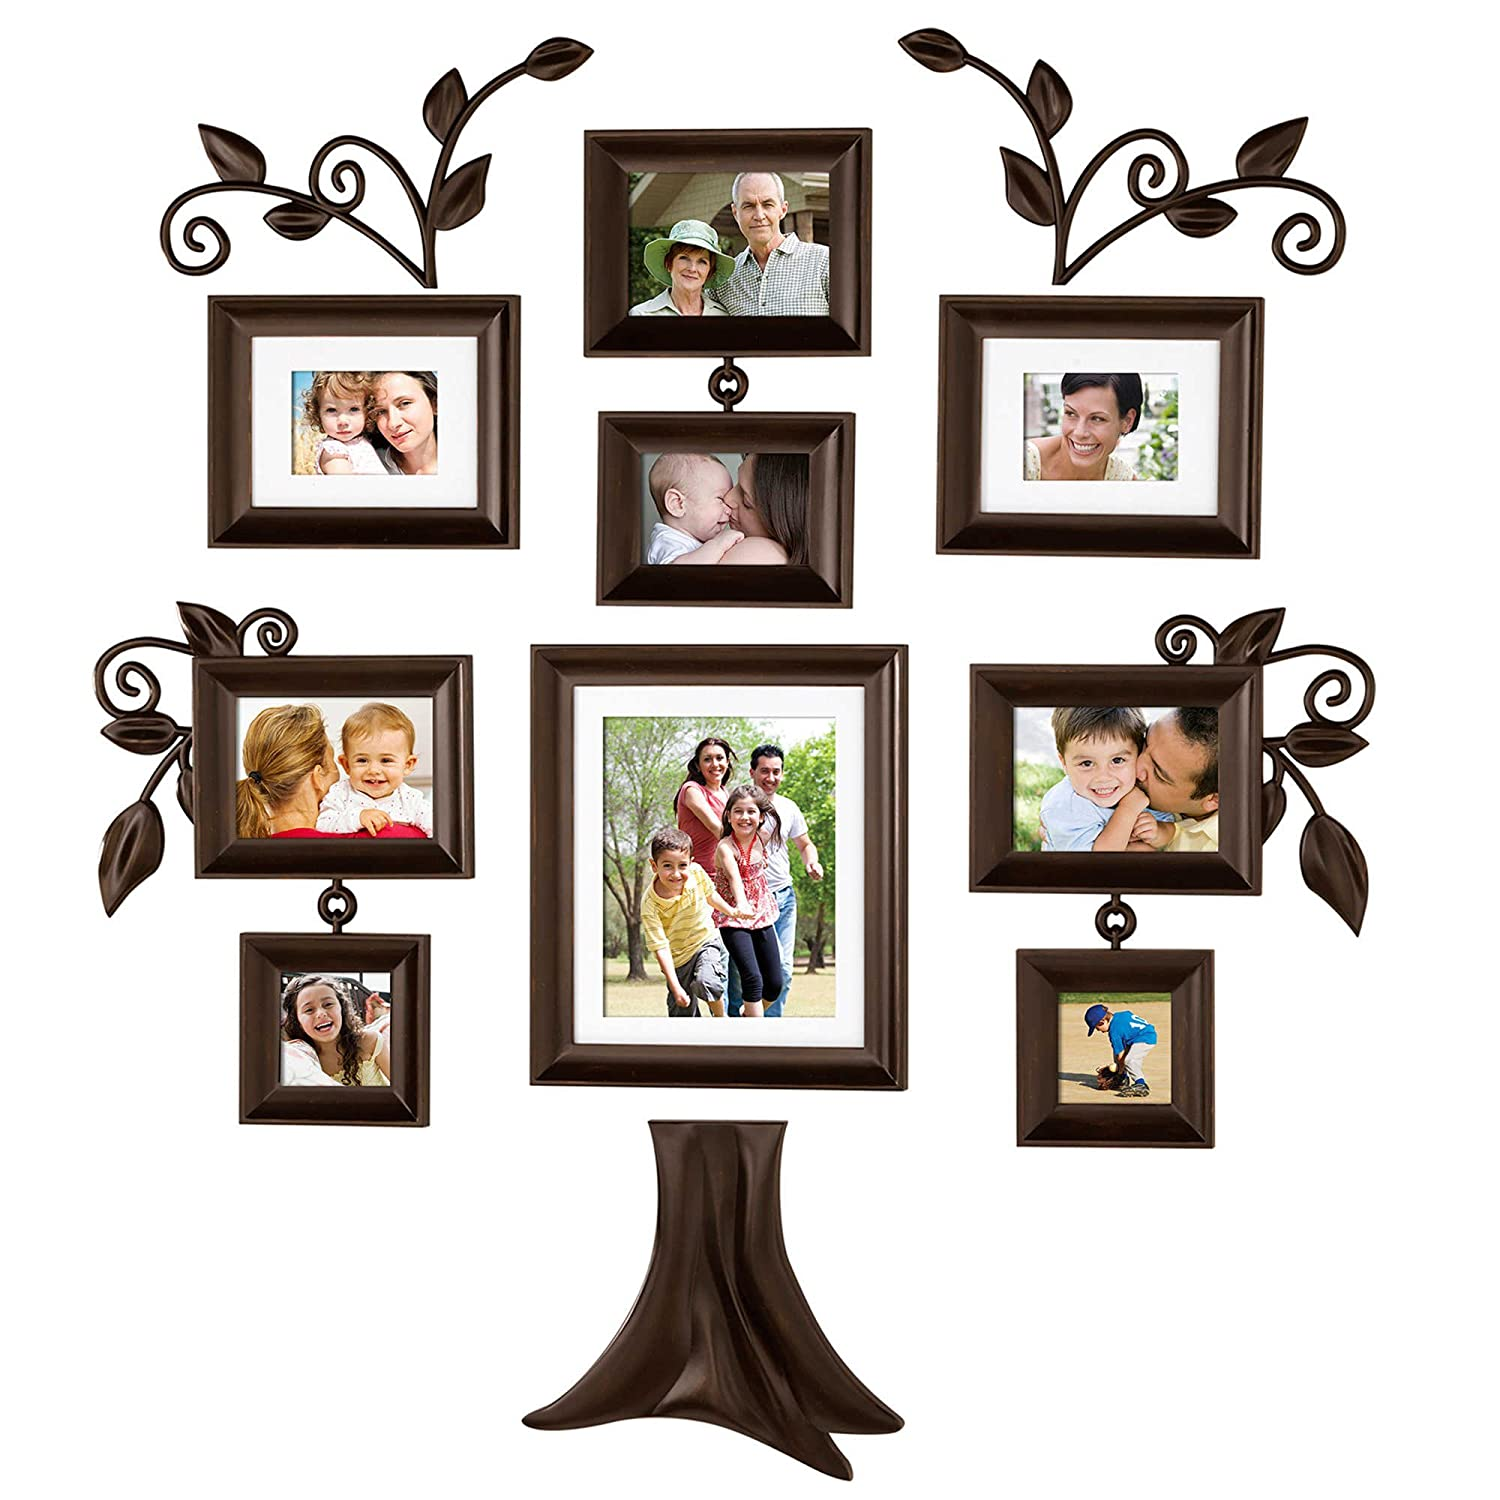 Amazon family tree 9 piece family tree collection picture amazon family tree 9 piece family tree collection picture frames jeuxipadfo Choice Image